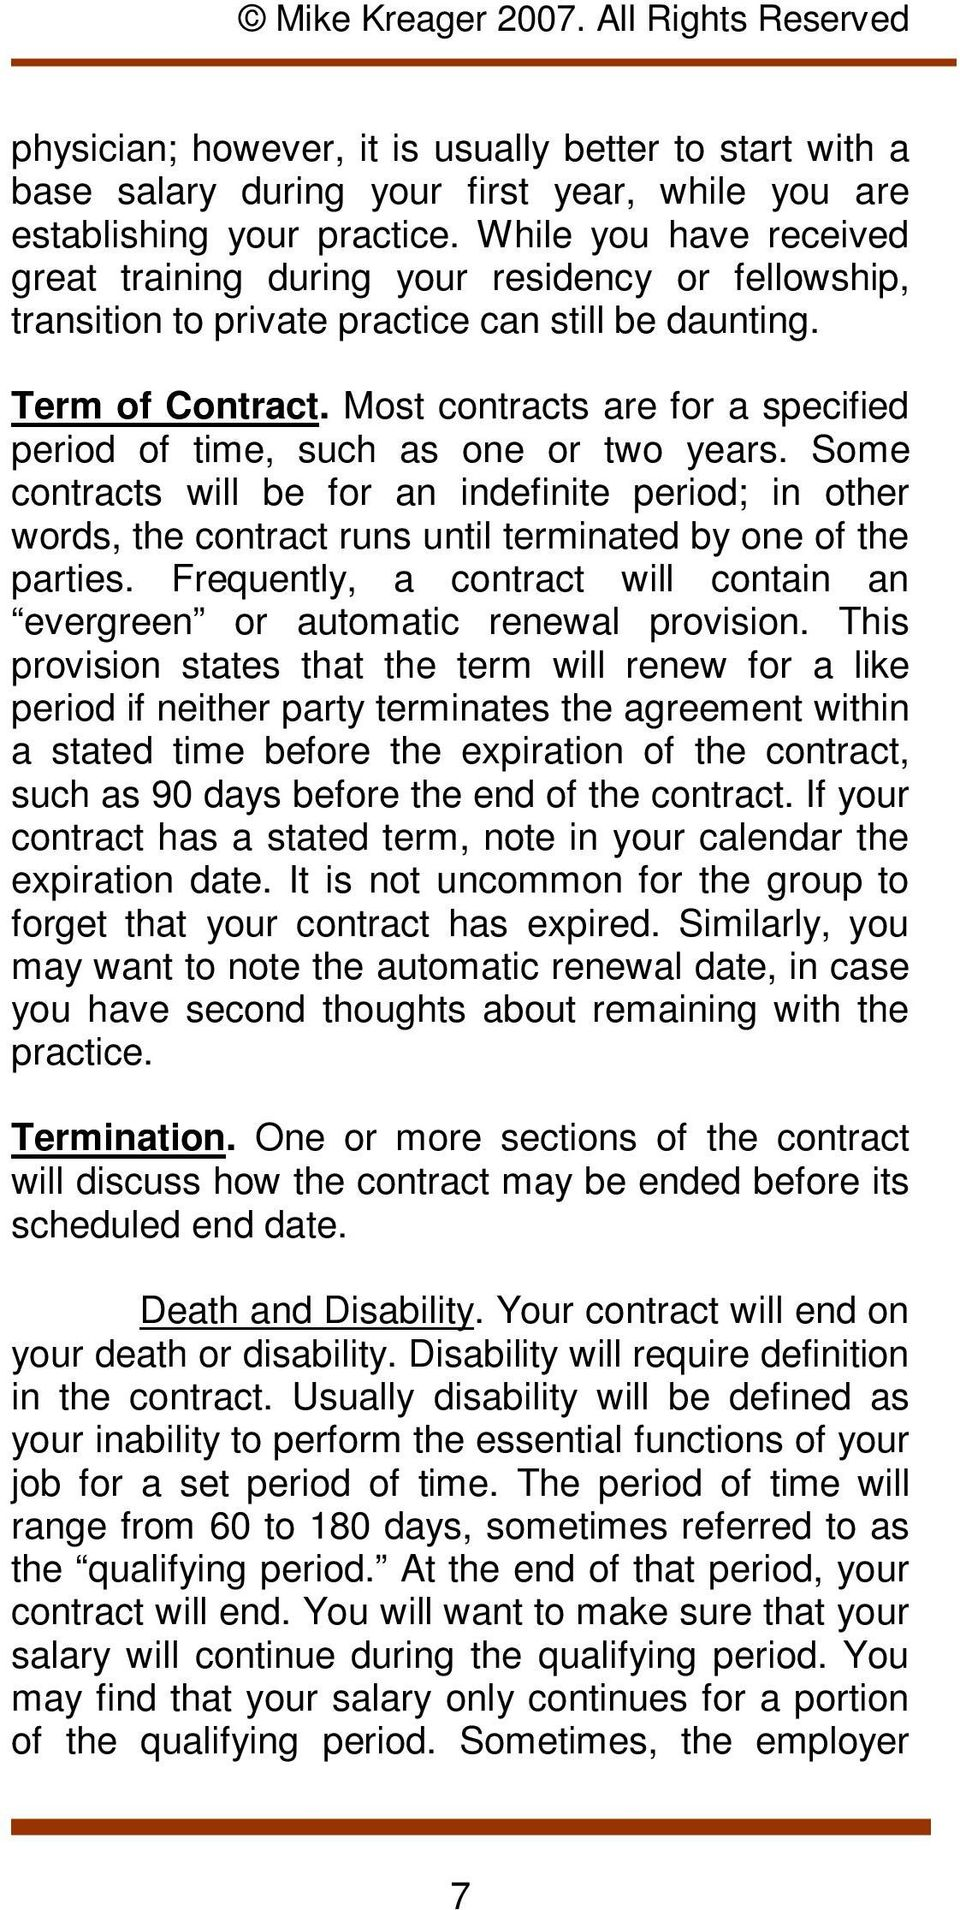 Most contracts are for a specified period of time, such as one or two years. Some contracts will be for an indefinite period; in other words, the contract runs until terminated by one of the parties.